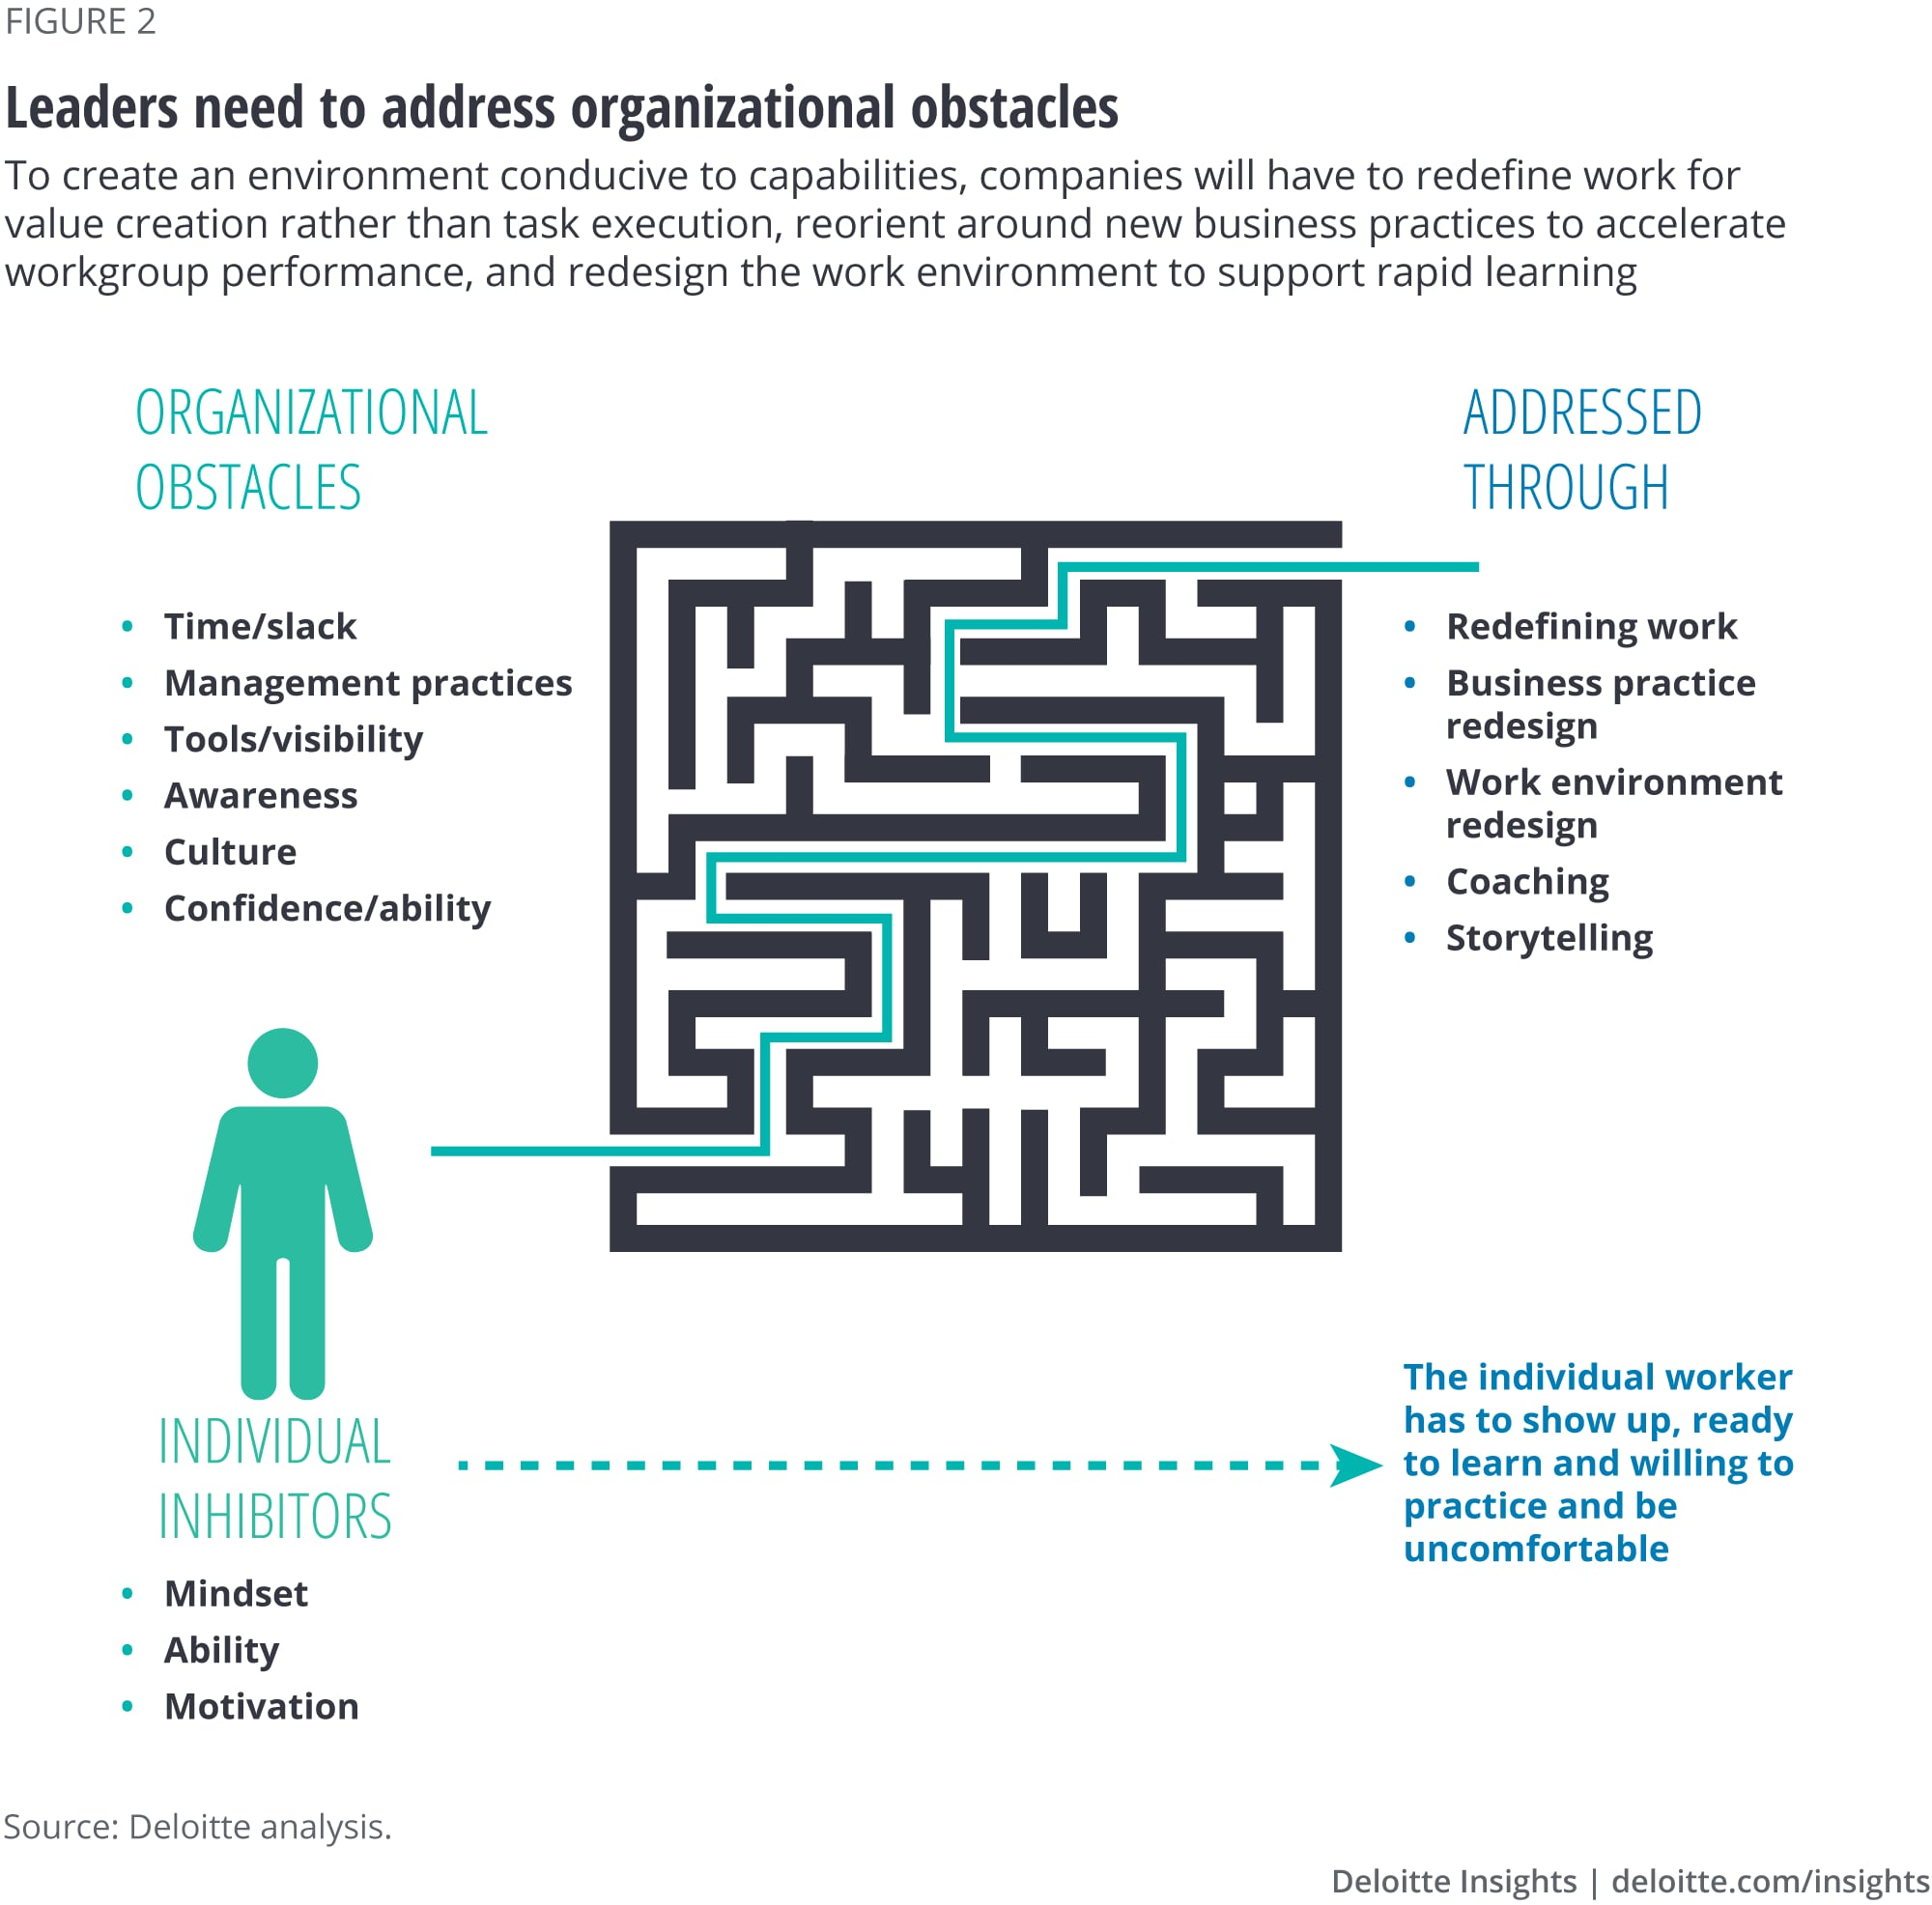 Organizations face obstacles that will challenge capabilities